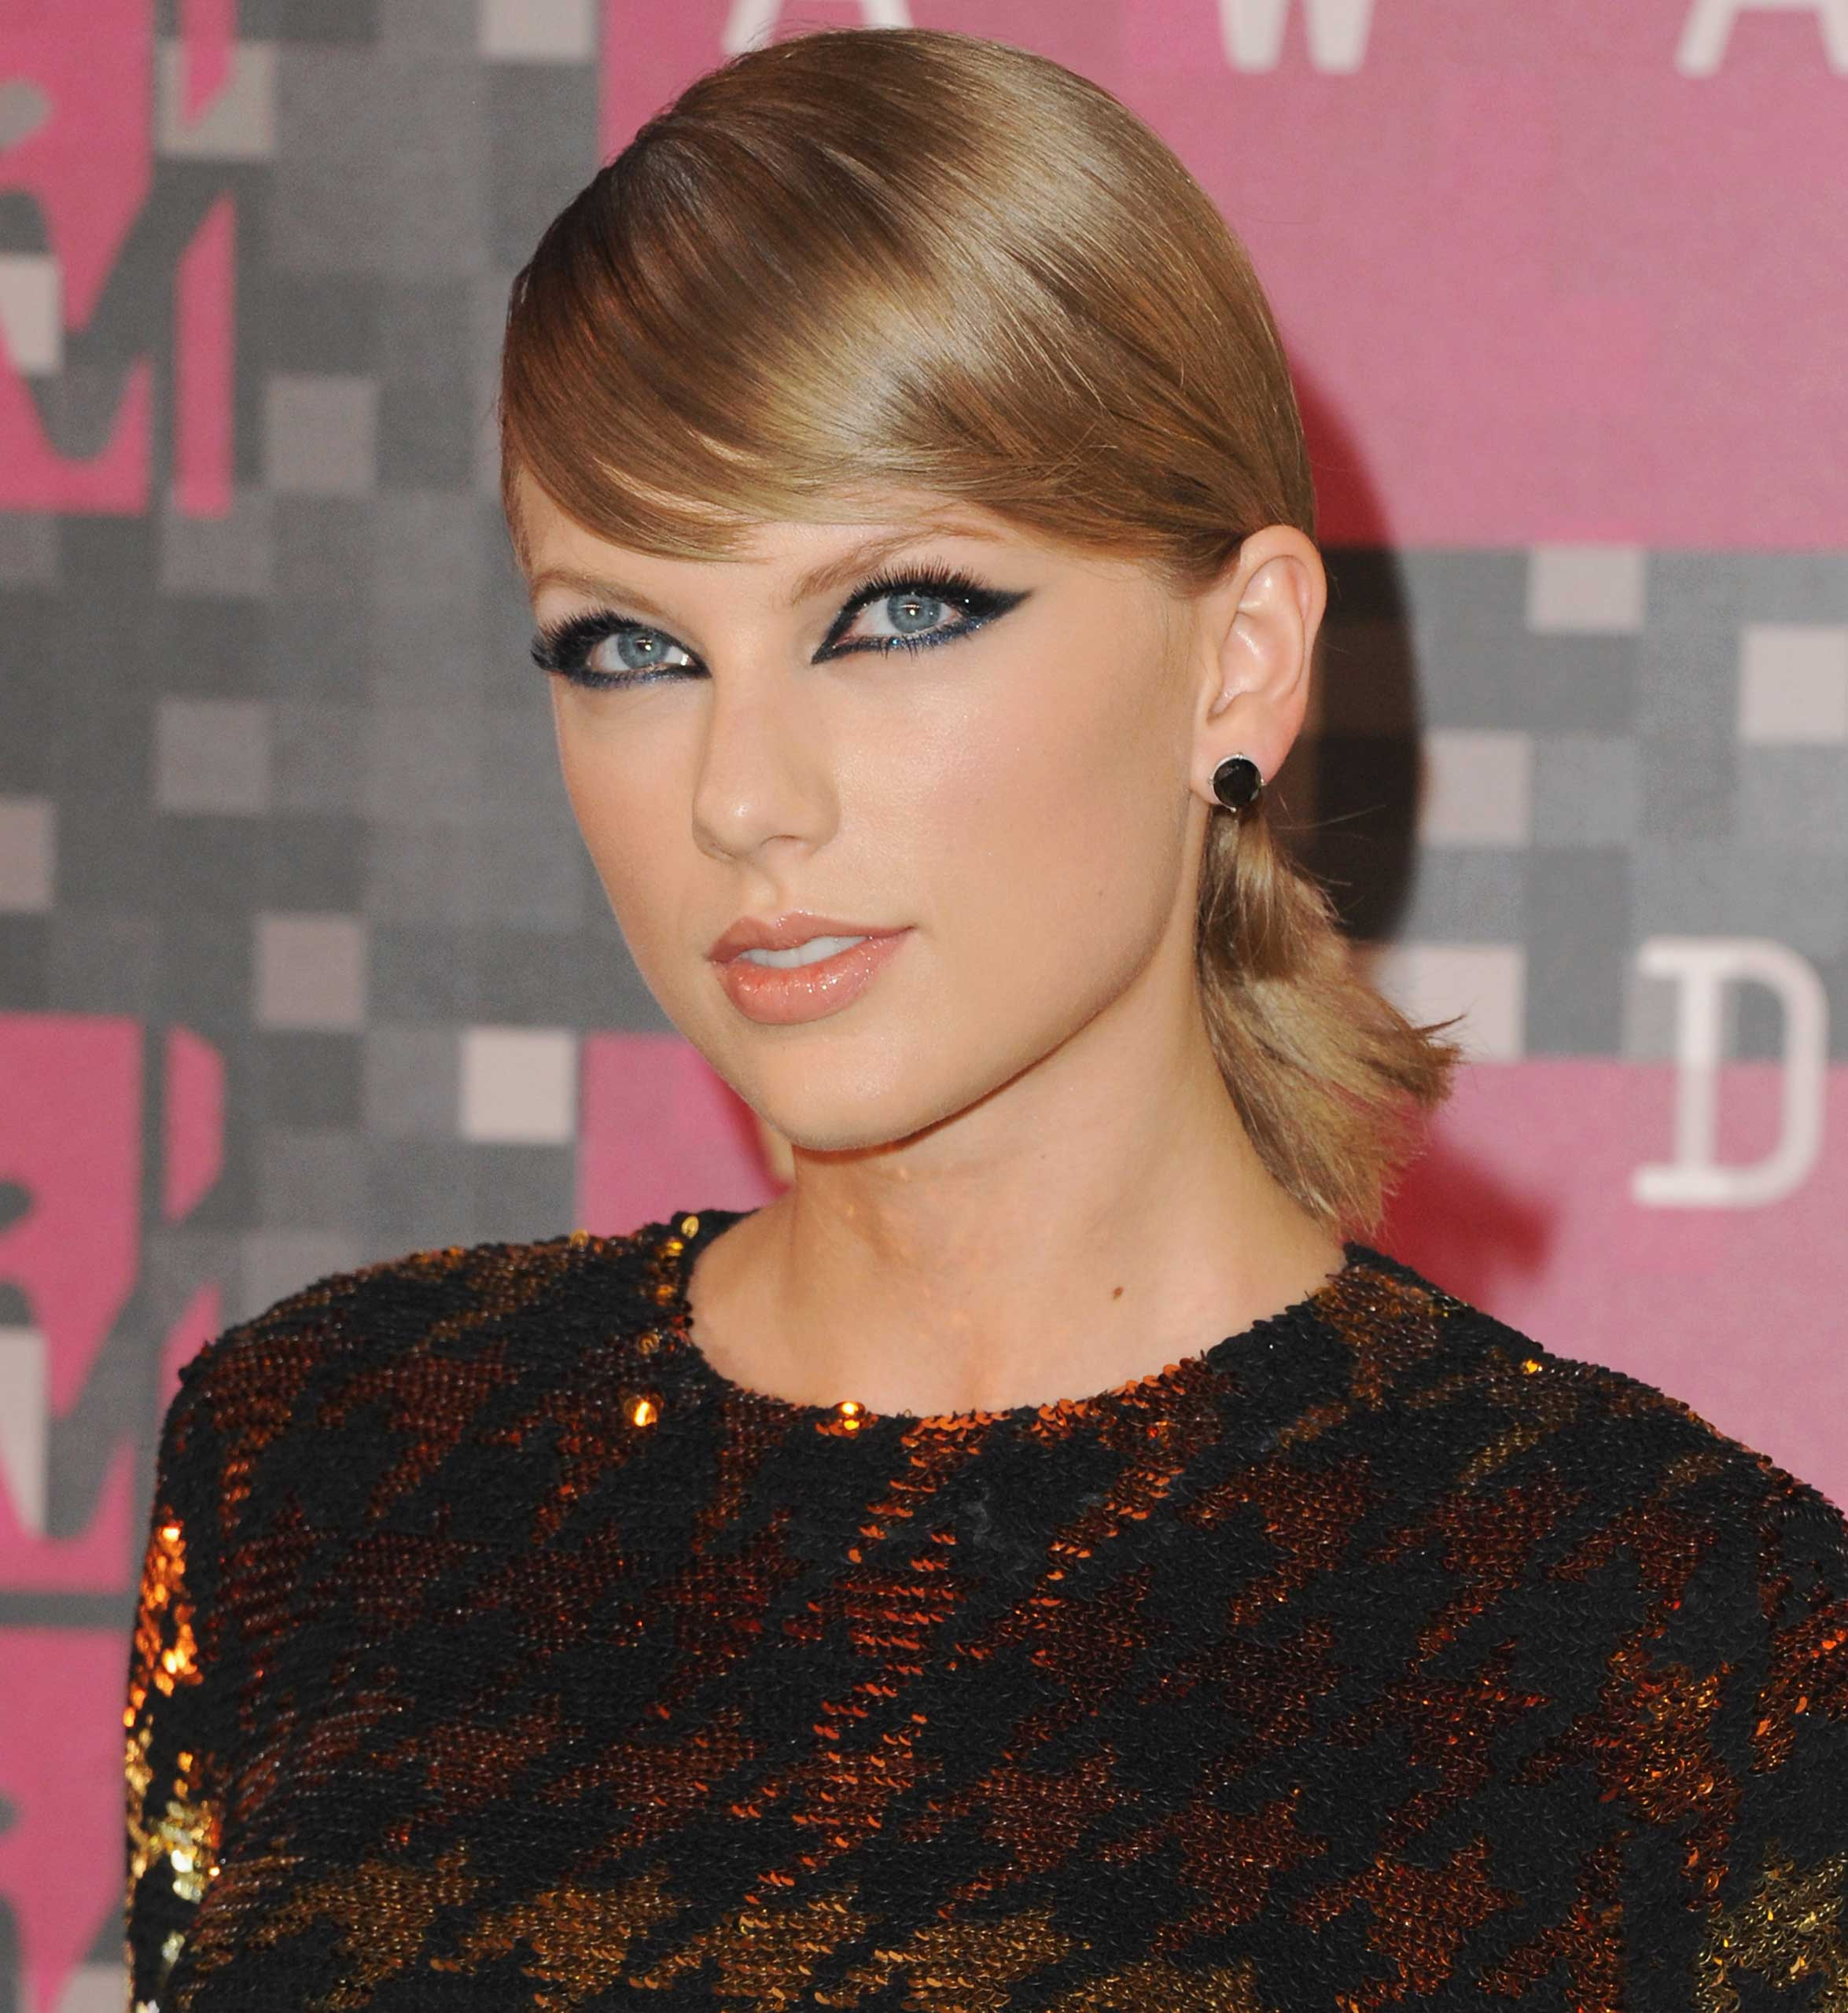 Singer Taylor Swift arrives at the 2015 MTV Video Music Awards at Microsoft Theater  in Los Angeles, on Aug. 30, 2015.